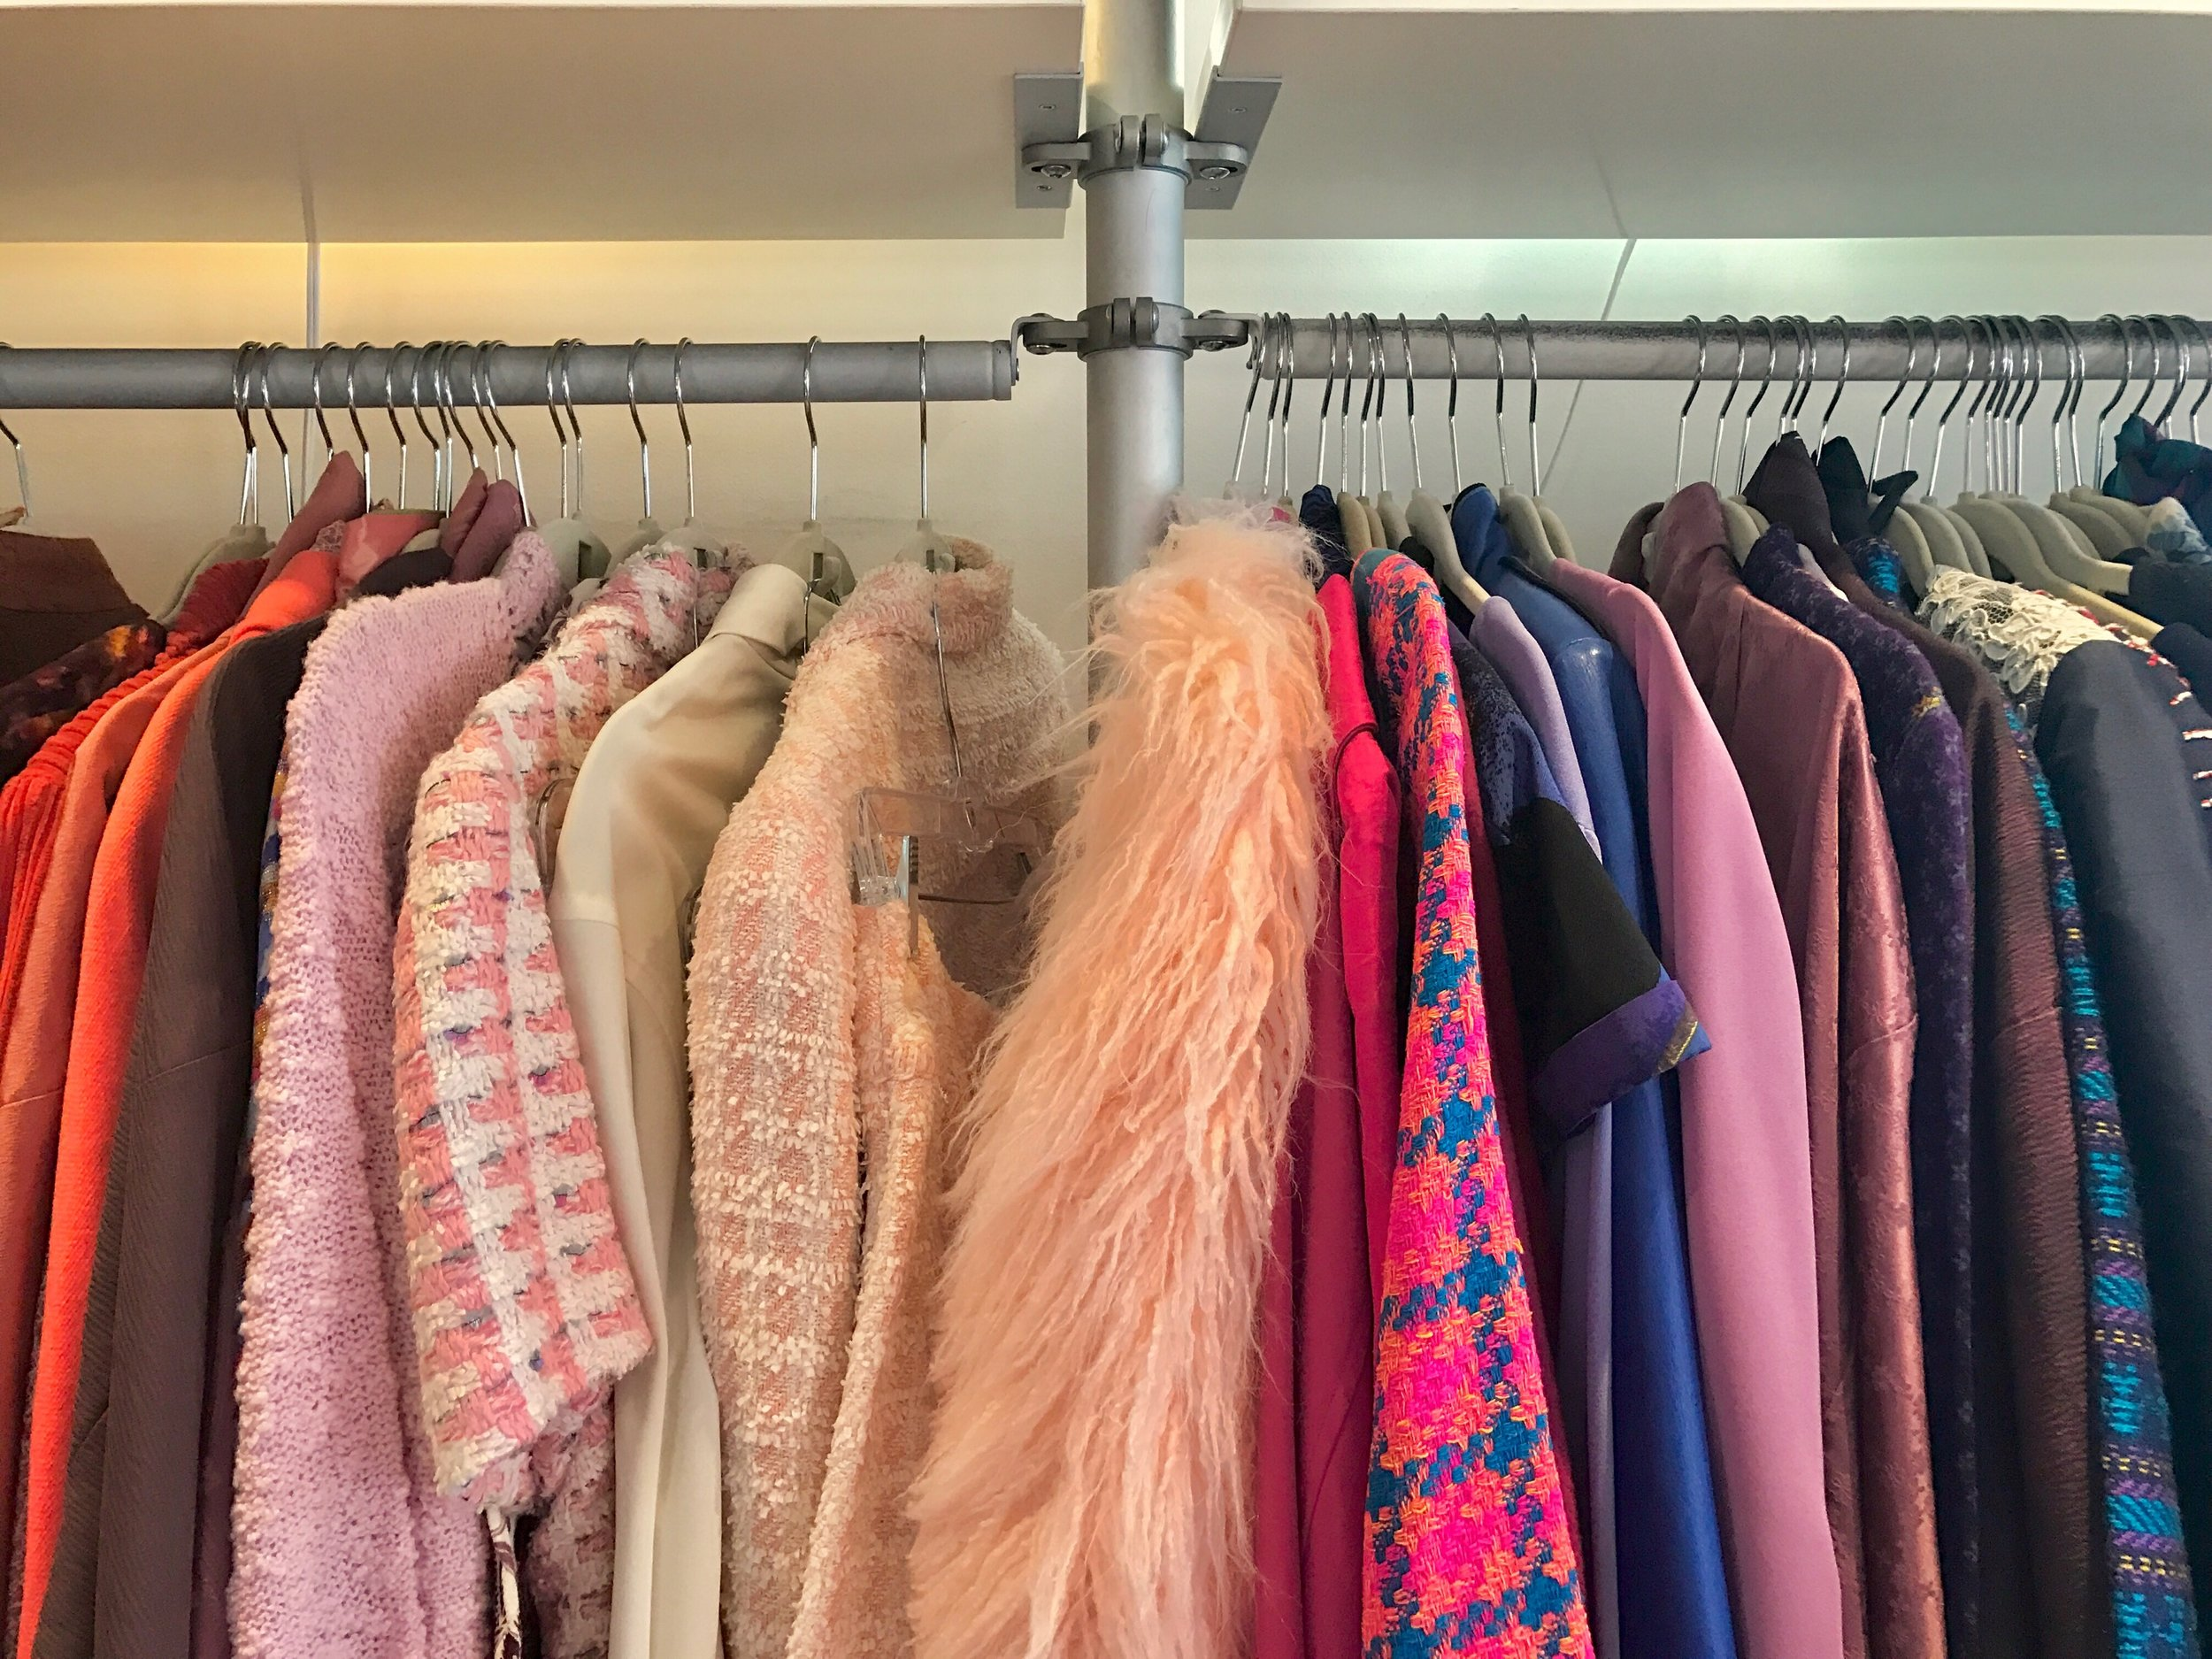 Chanel suits to unique finds, in every color and material.